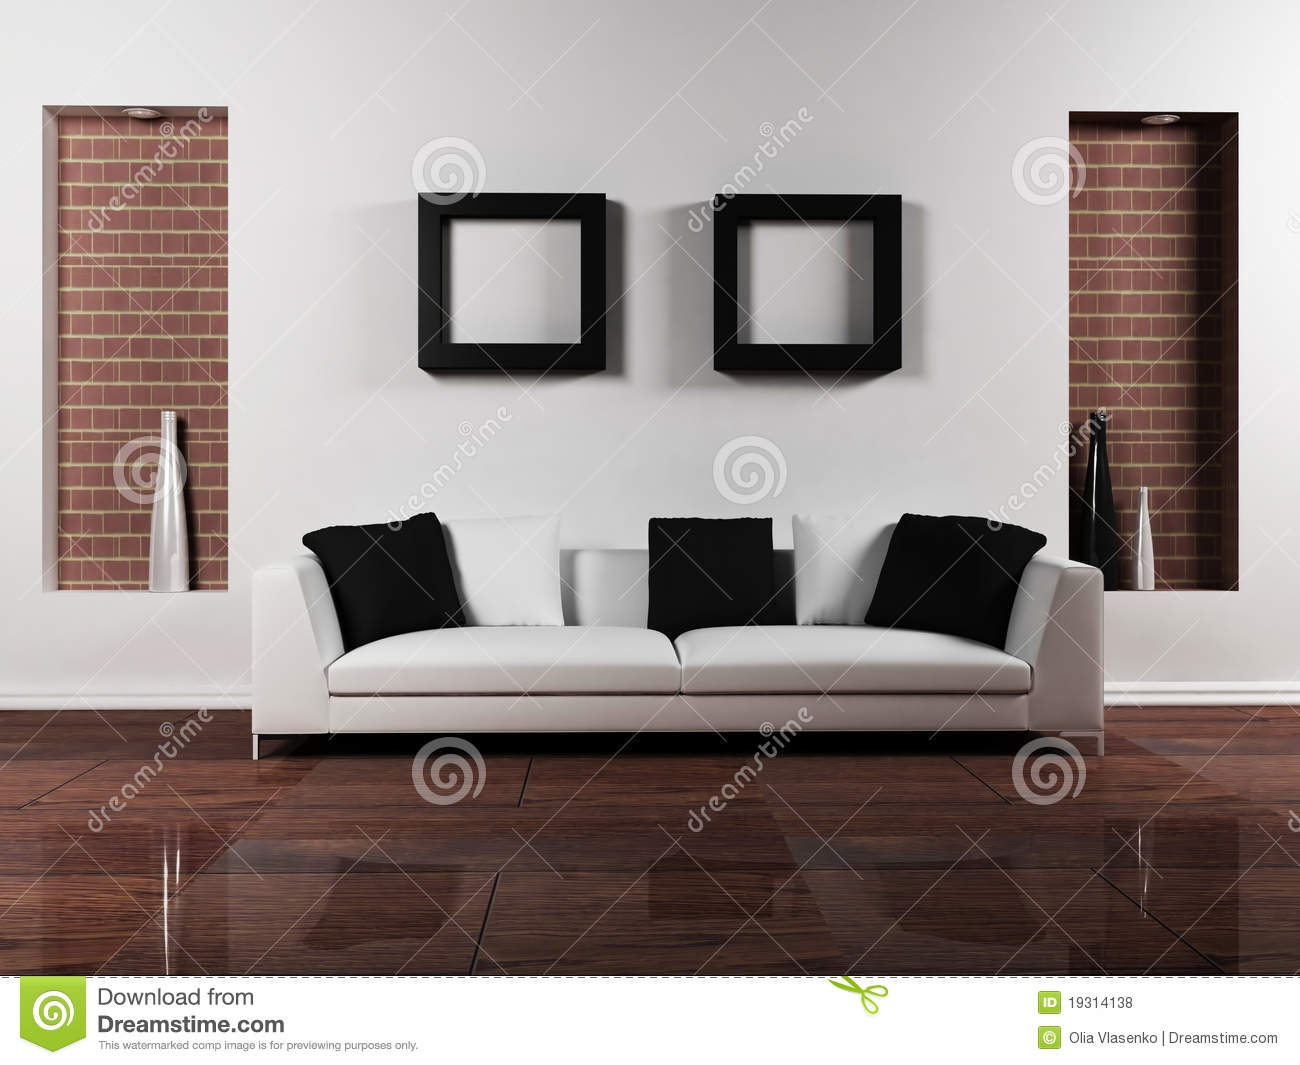 Modern interior design of living room royalty free stock for Modern furniture design